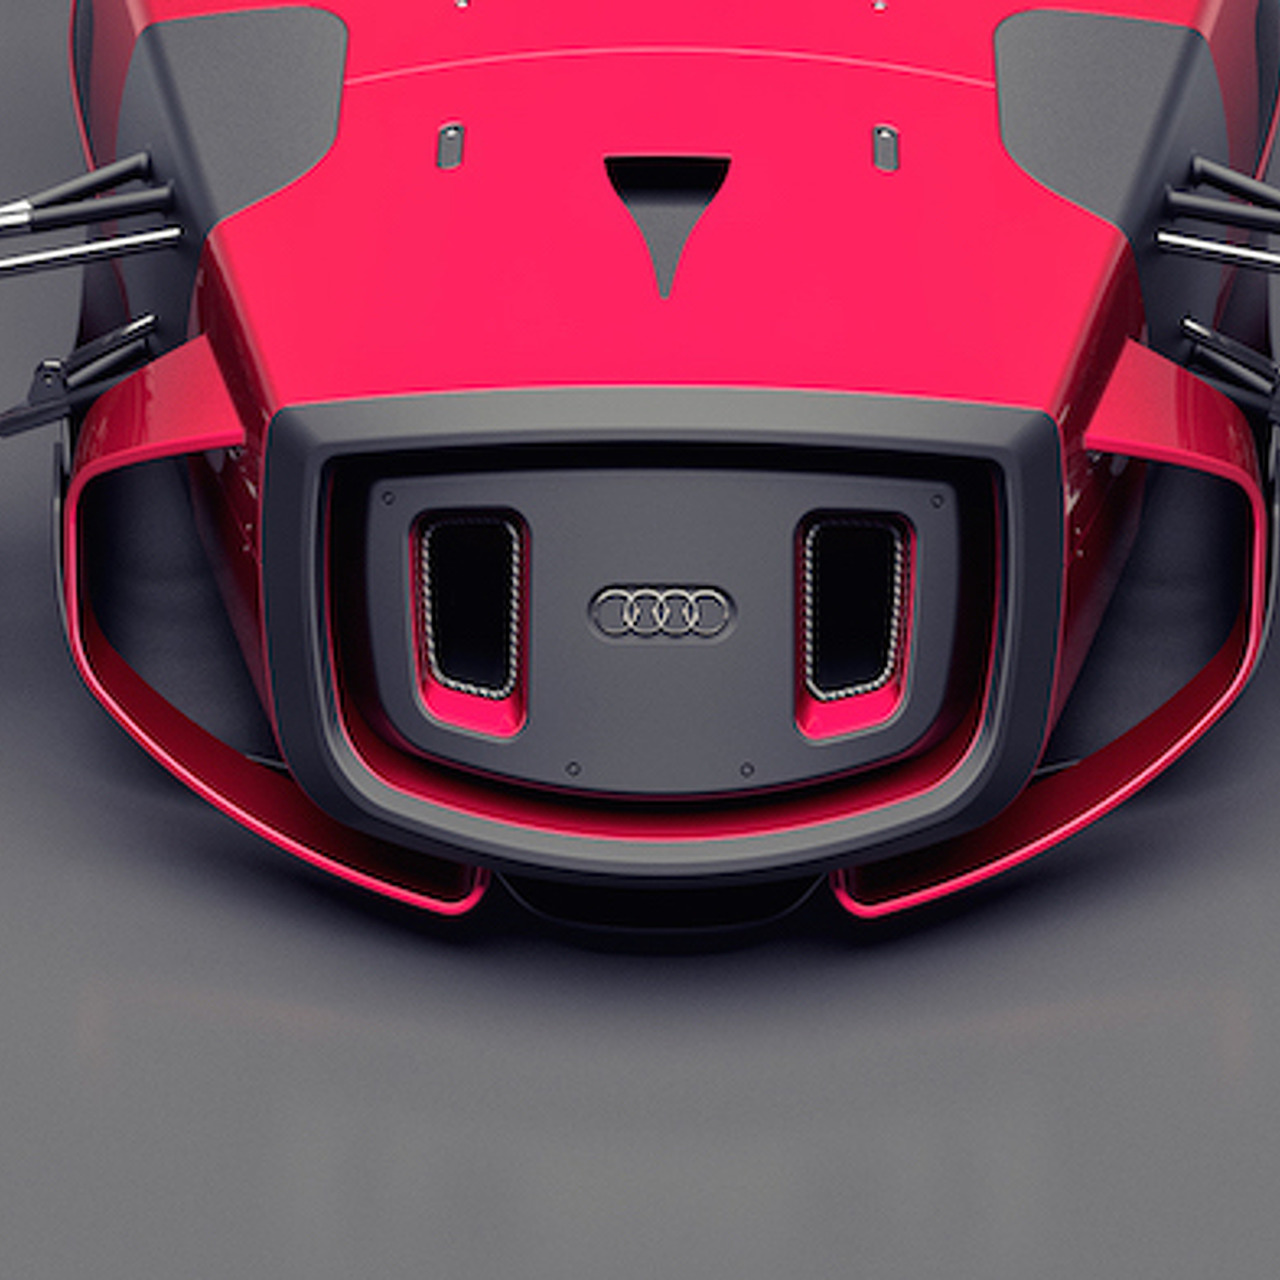 Futuristic Audi Union Concept Relives Cars of Racing Past